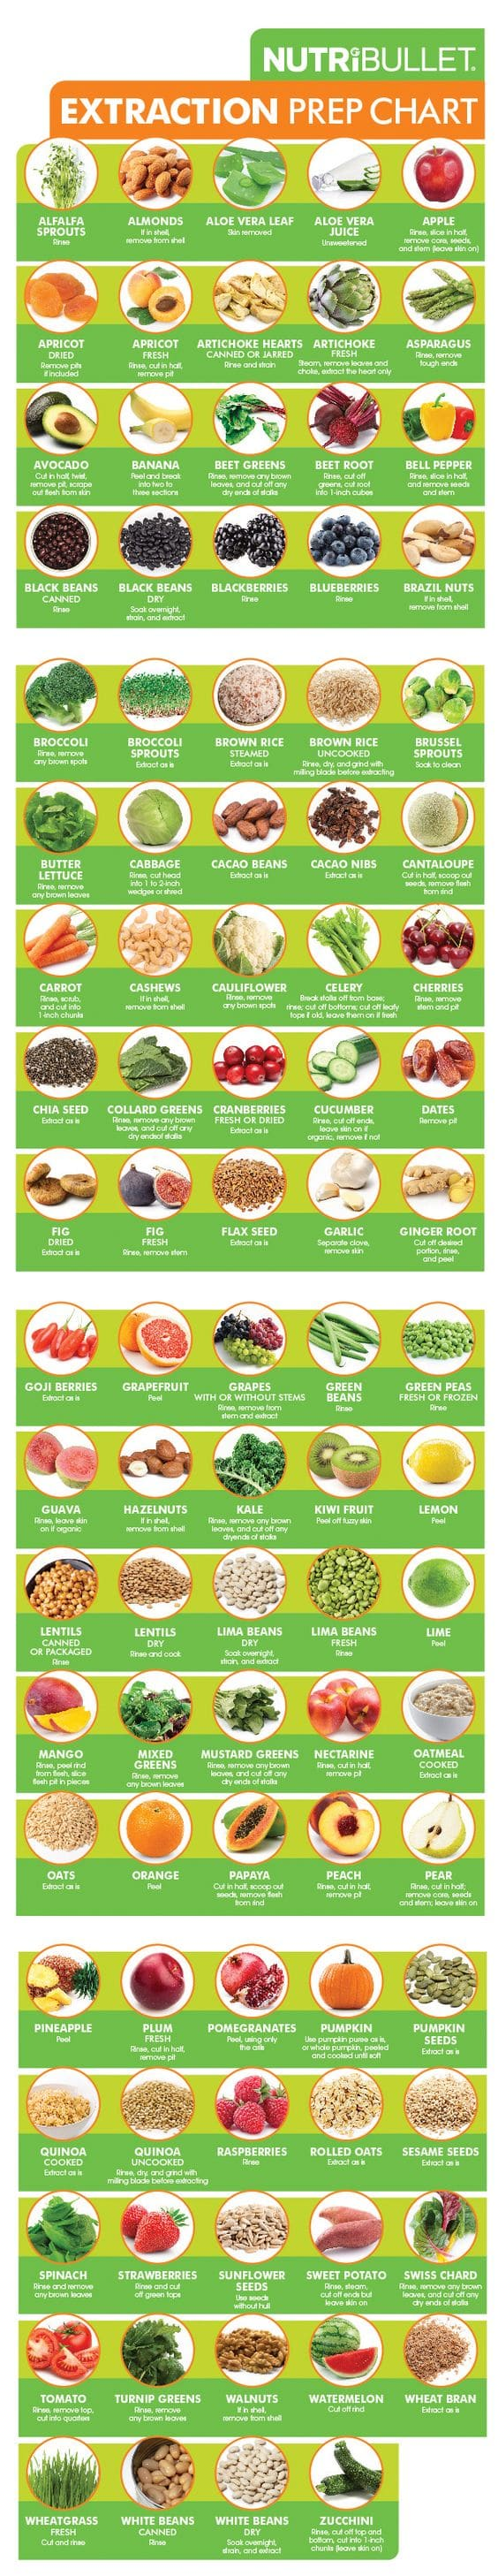 94 Foods and How To Prep Them For Juicing